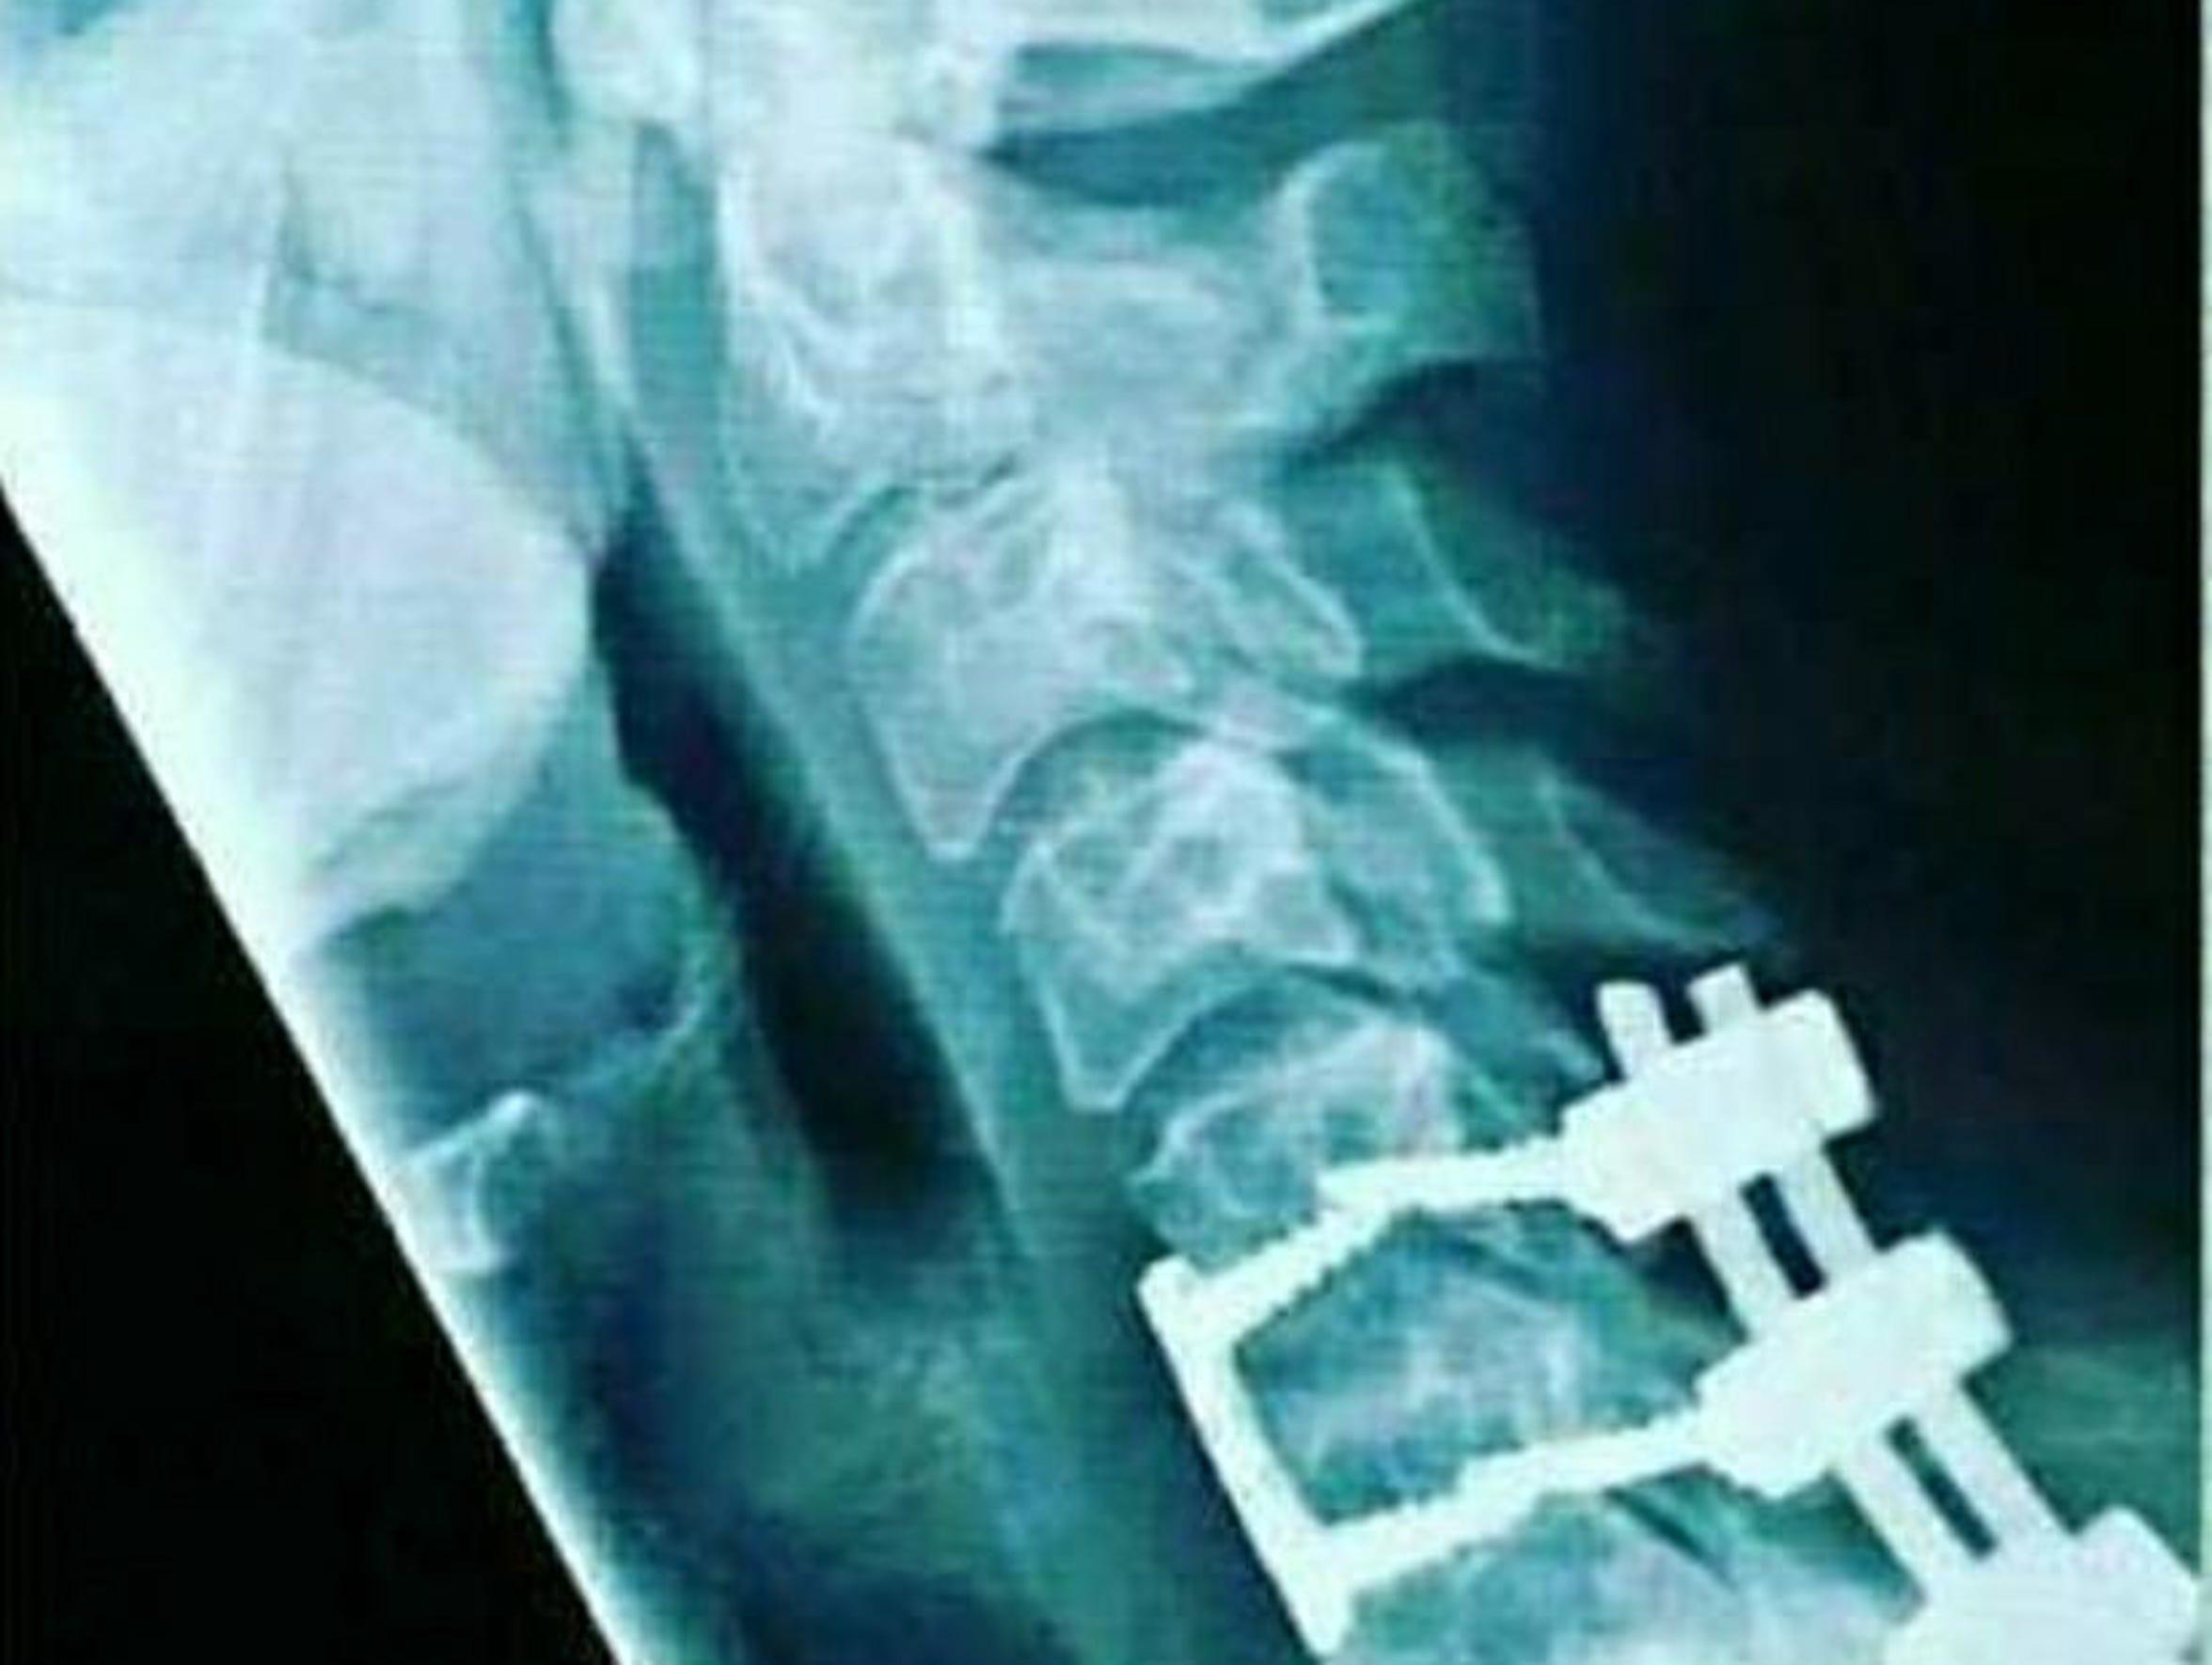 This is an X-Ray taken a few years ago of Teisha Doyle's spine. She had neck, pack and pelvis pain since a 2006 car accident and relies on medical marijuana to relieve pain and inflammation.